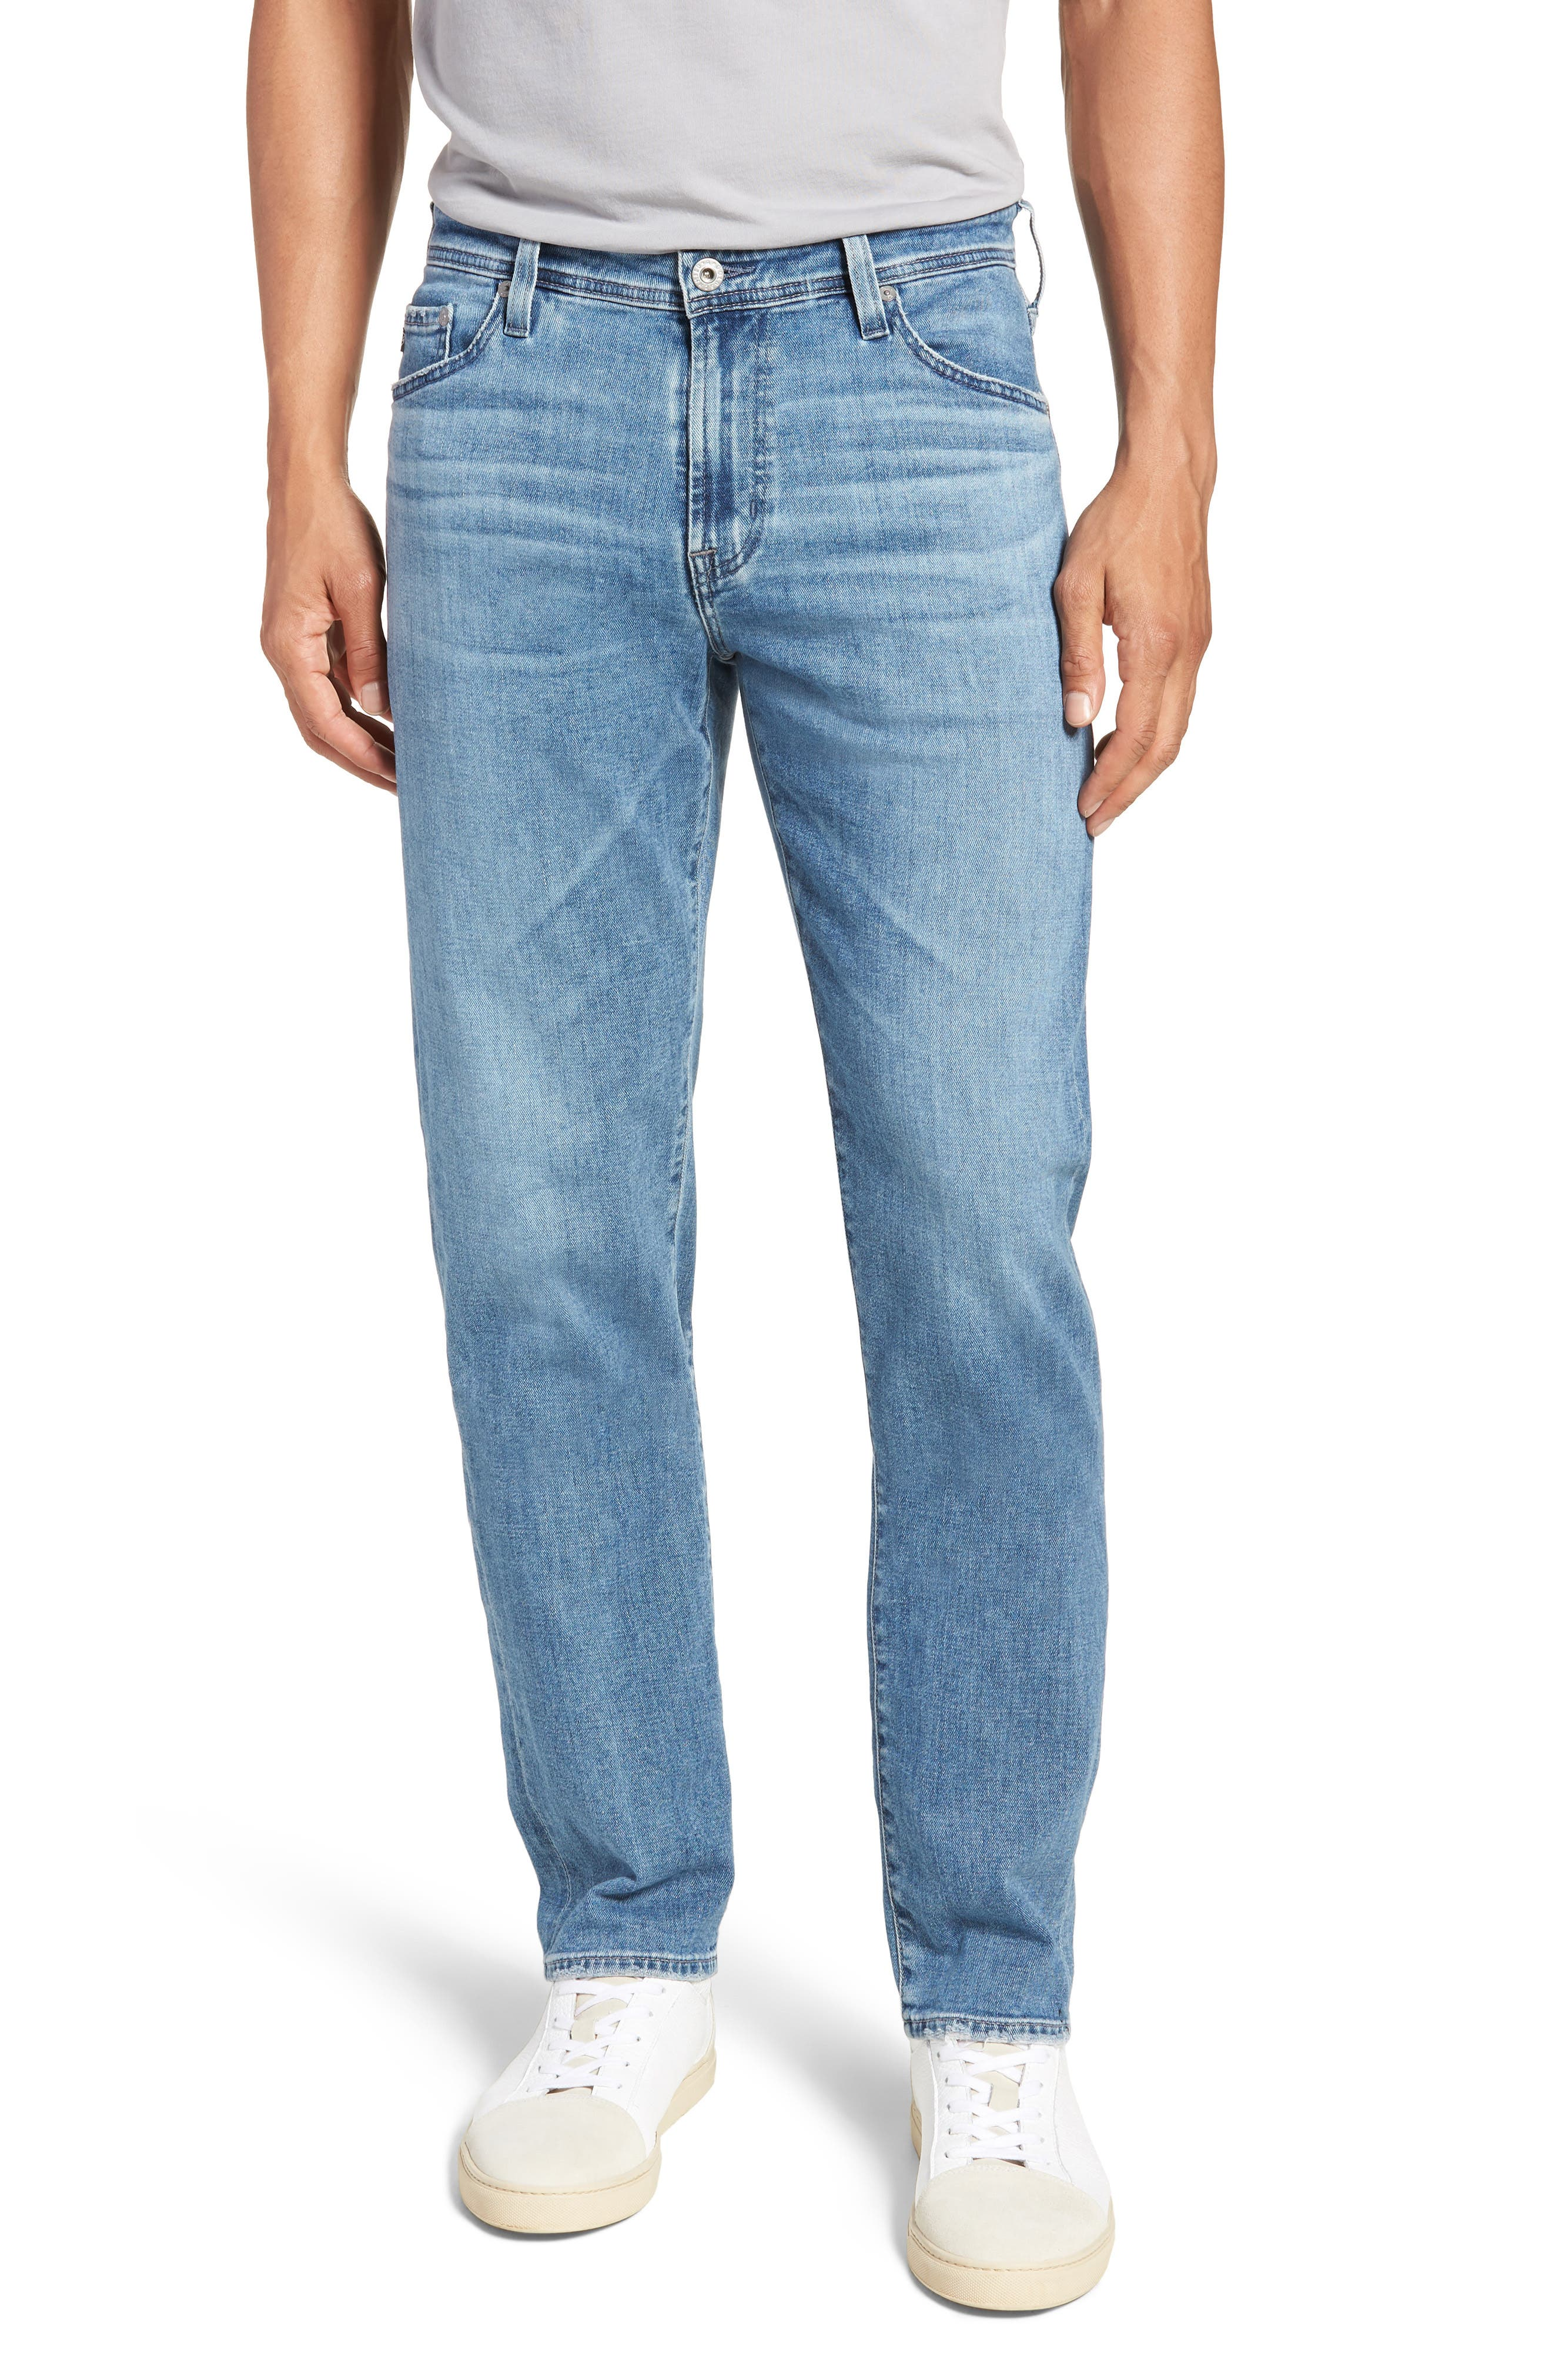 Graduate Slim Straight Leg Jeans,                         Main,                         color, SANDPIPER